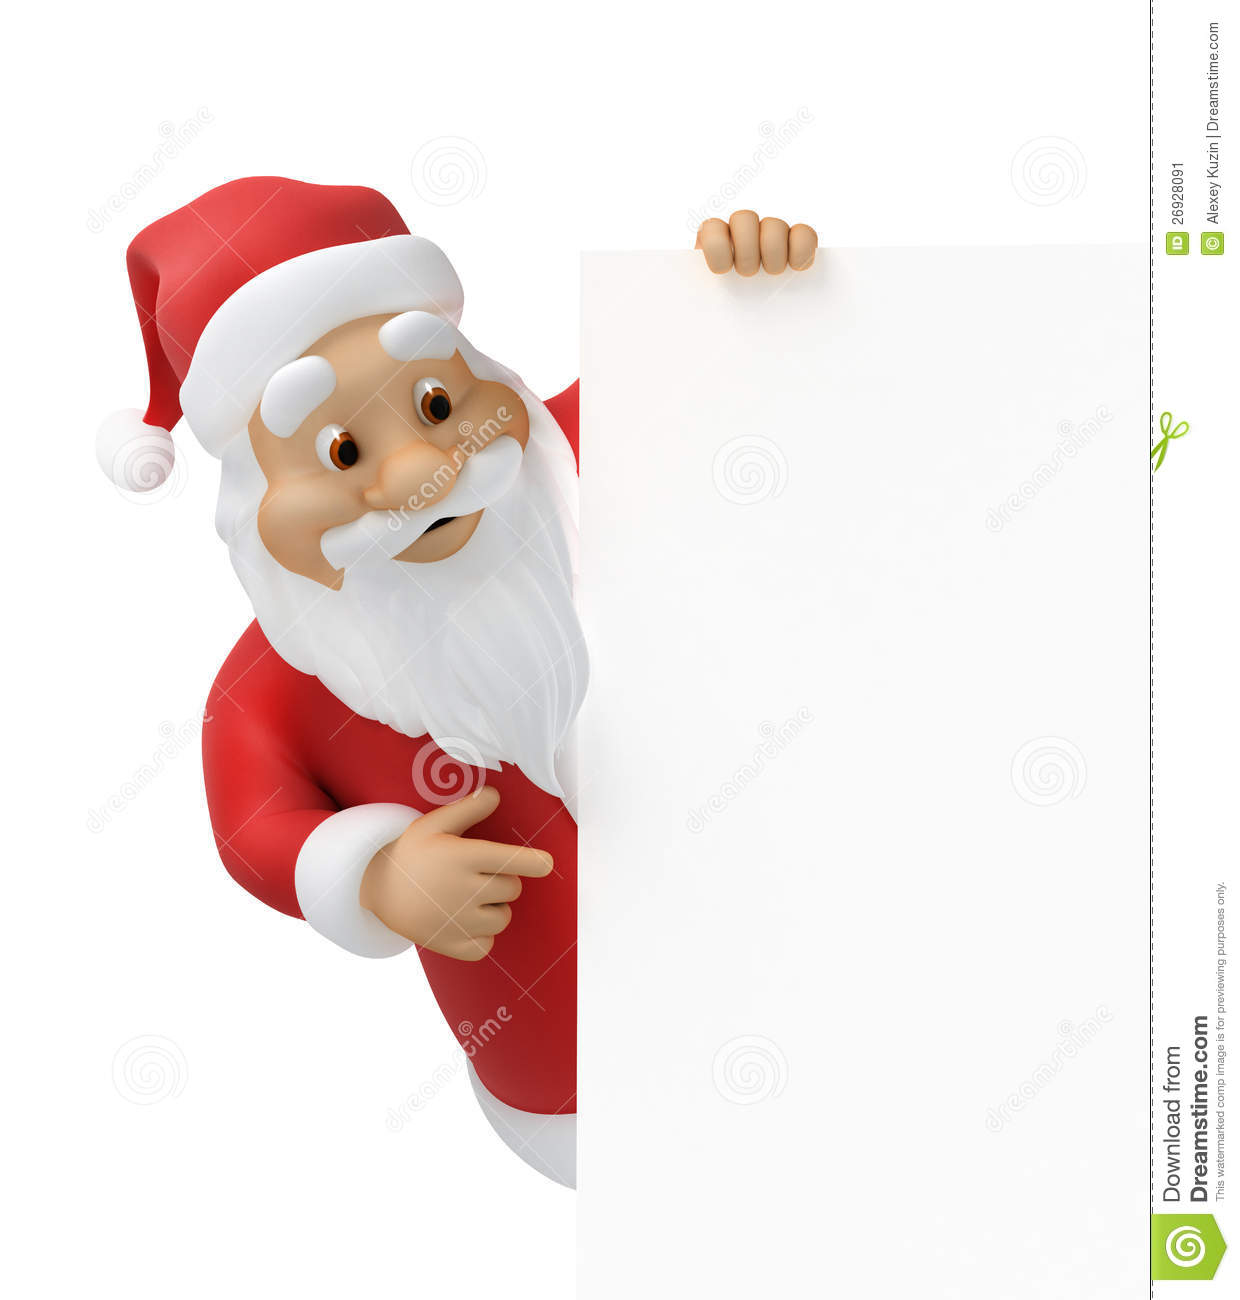 Uncategorized Santa Claus Paper santa claus with a sheet of paper stock illustration image 26928091 royalty free photo download claus